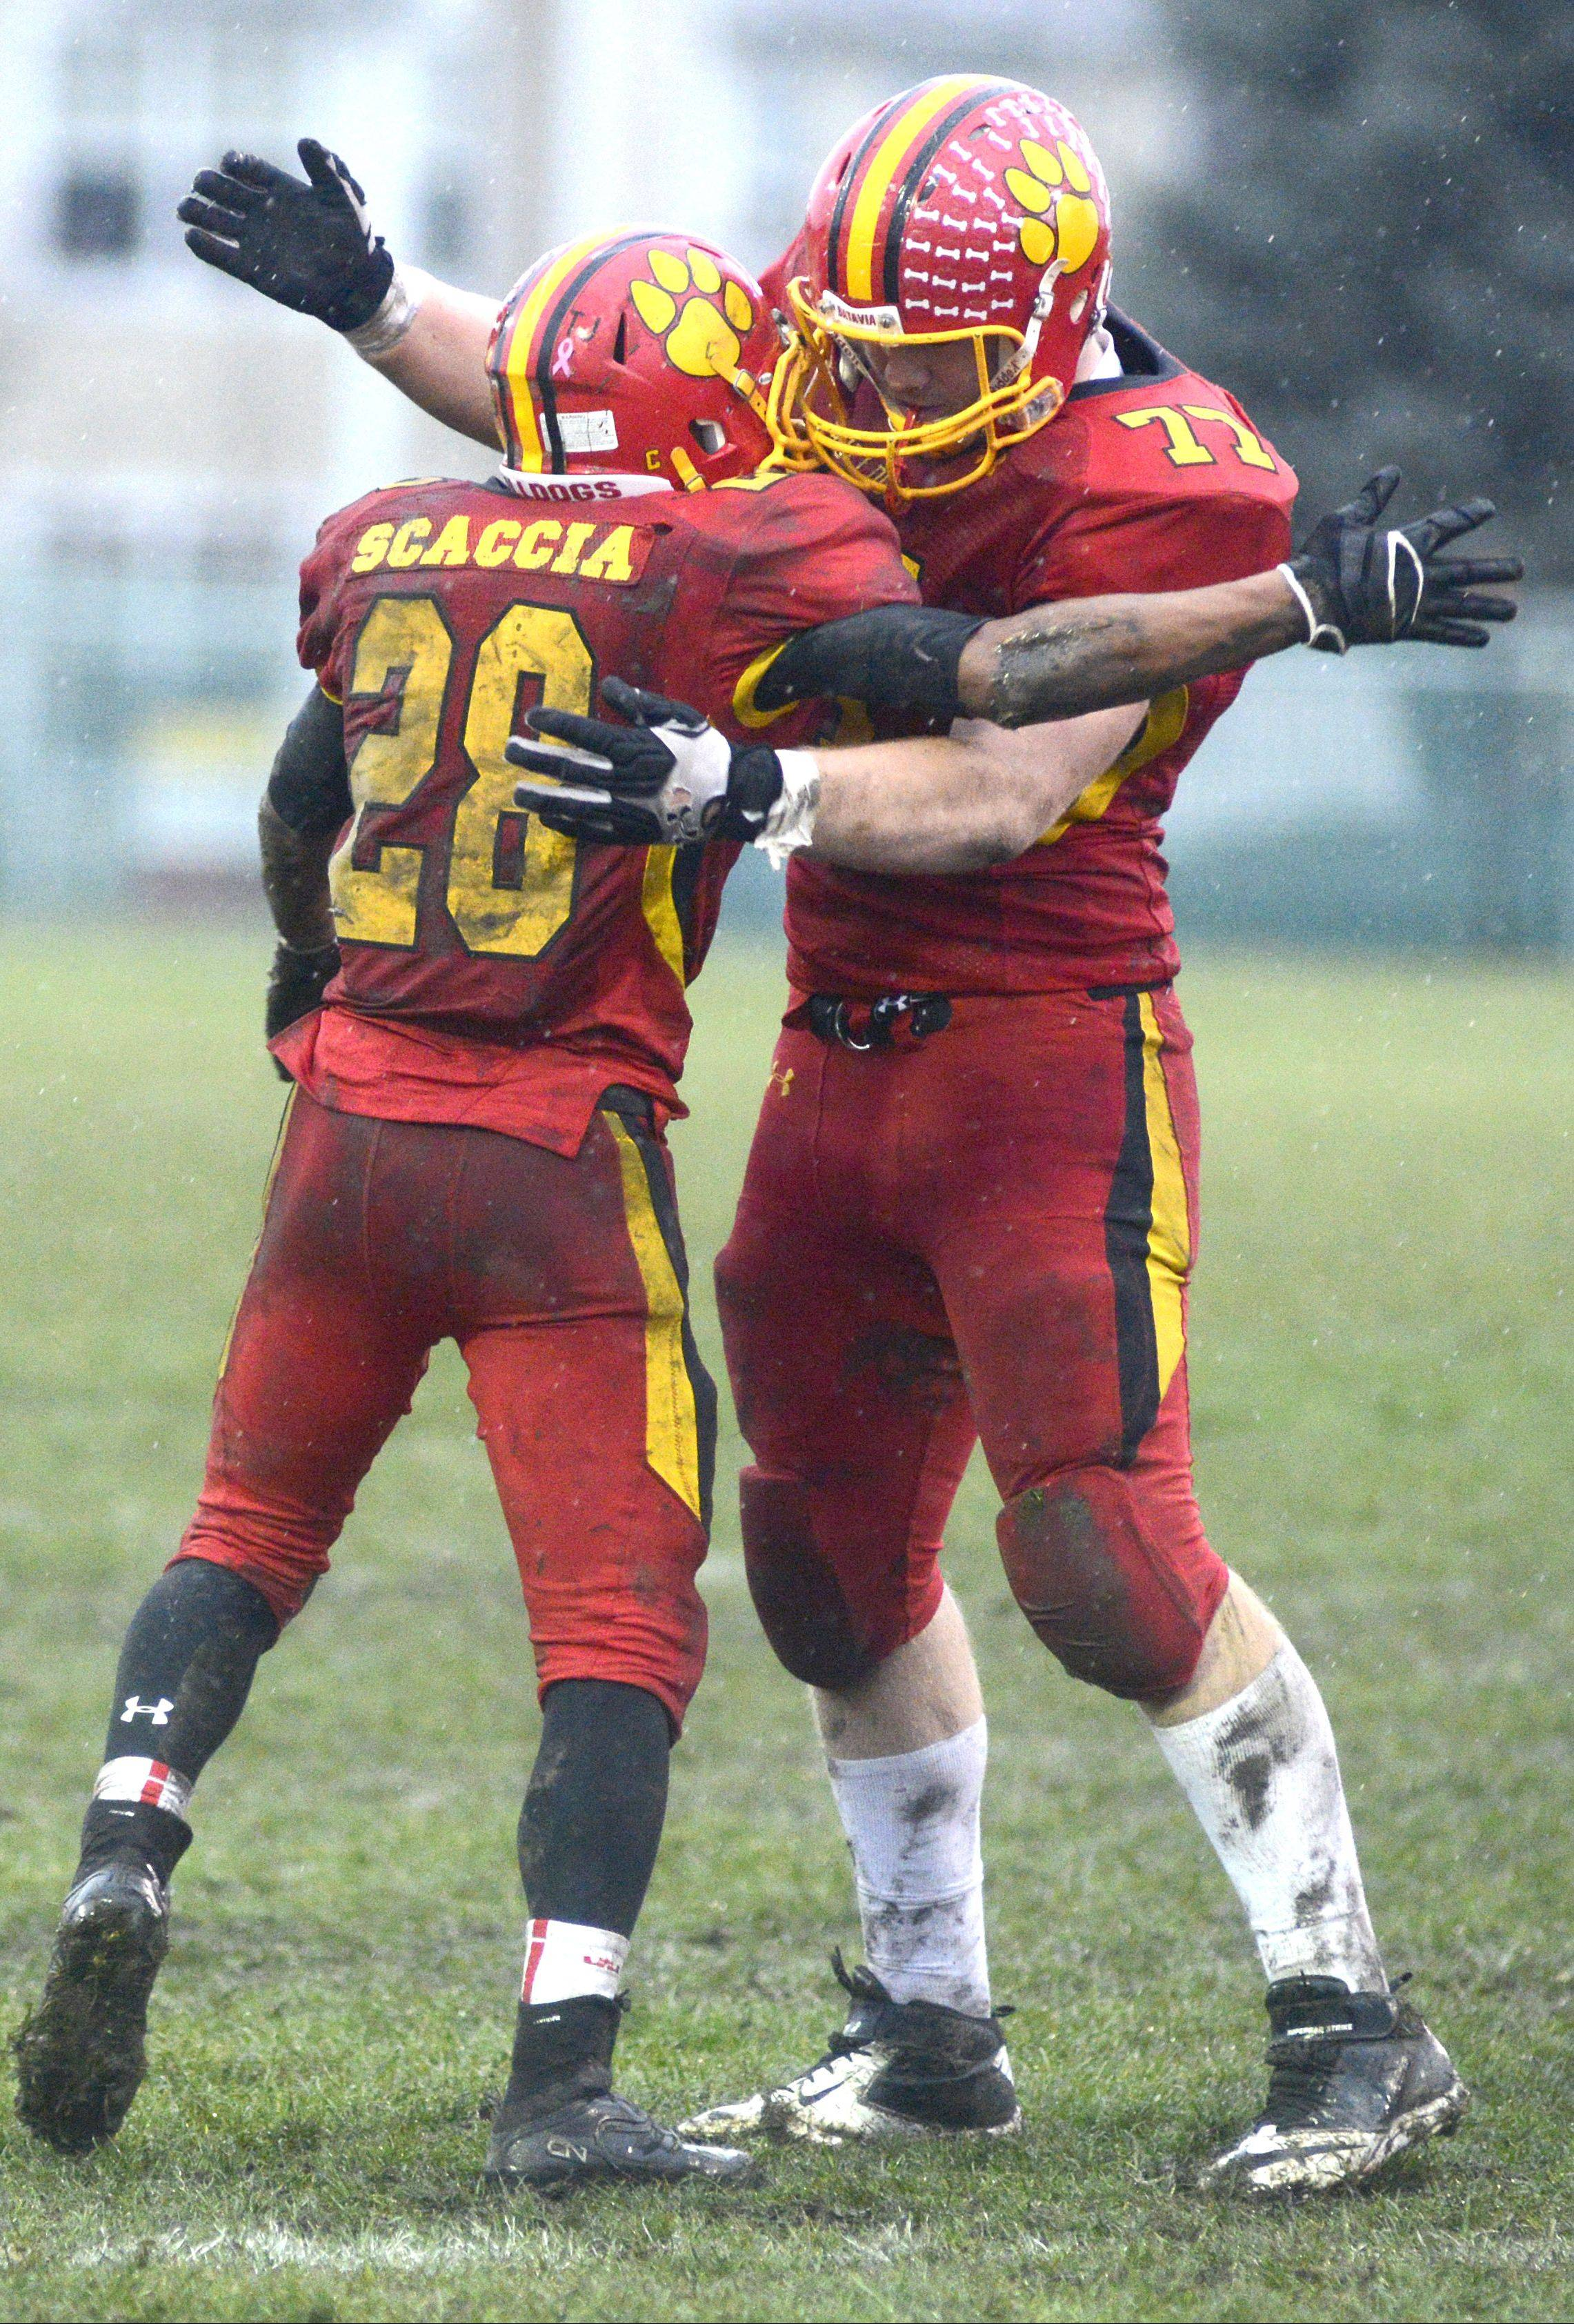 Batavia's Anthony Scaccia and Jack Breshears embrace on the field as the seconds tick down in their victory over Lake Forest in the Class 6A quarterfinals last week.